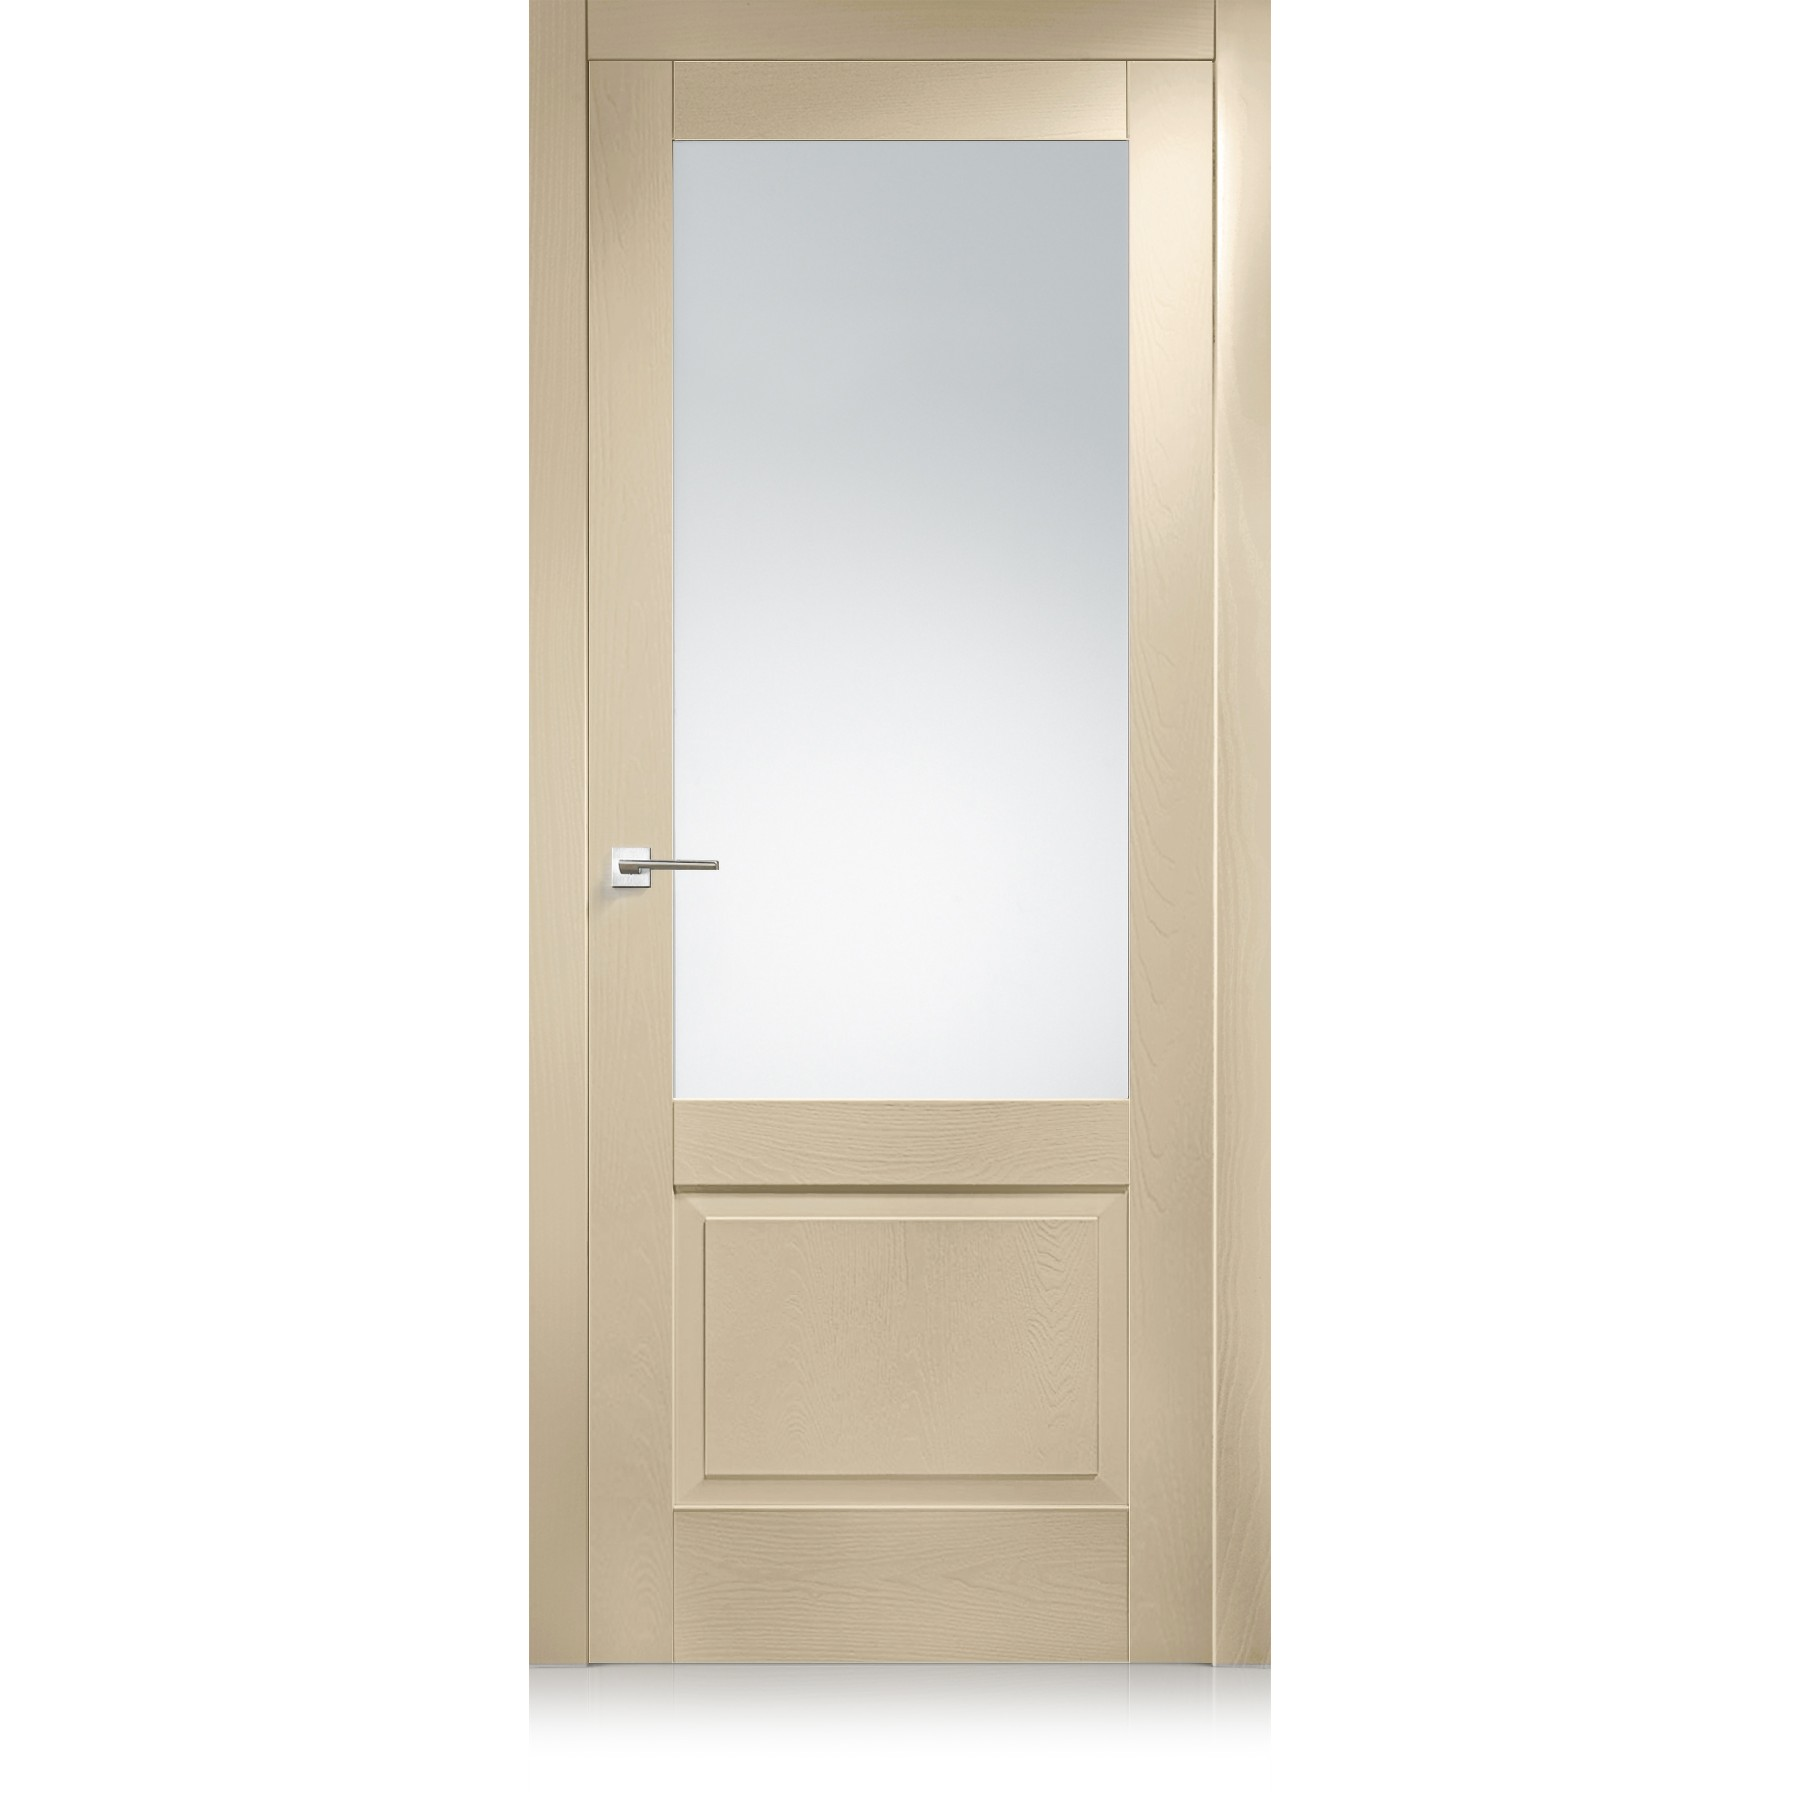 Suite / 22 trame cremy door